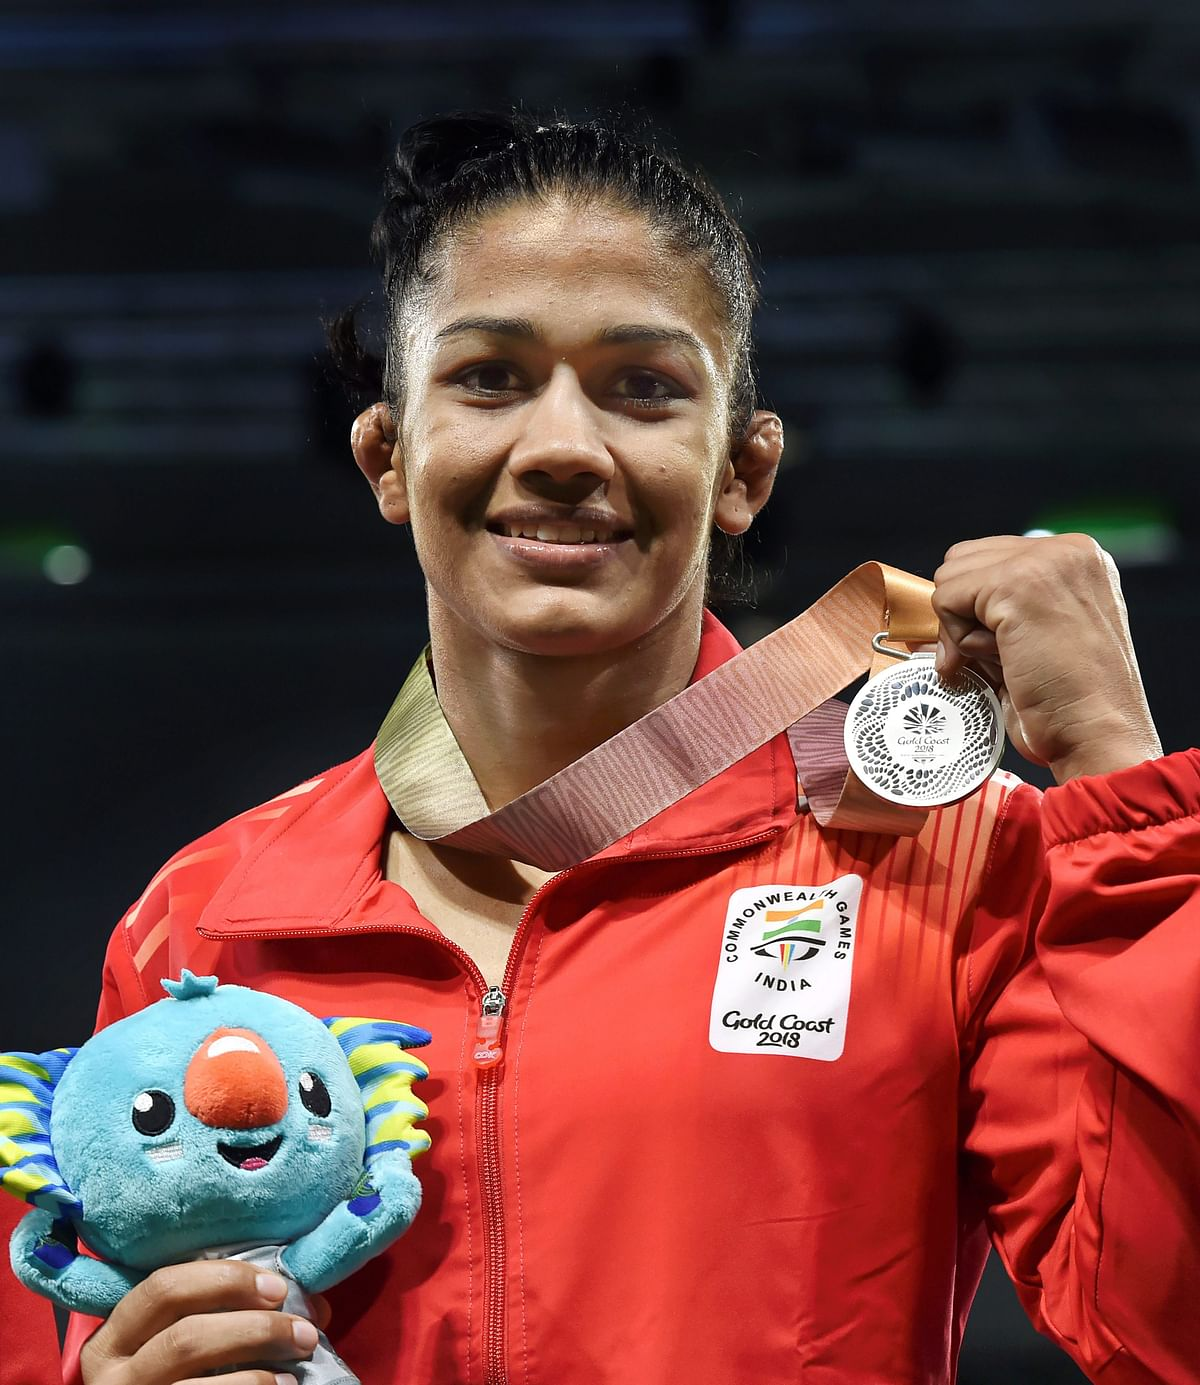 India's Babita Kumari wins silver medal in the Women's Freestyle 53 kg Nordic final match played against Canada's Diana Weicker at the Commonwealth Games 2018 in Gold Coast, on Thursday.